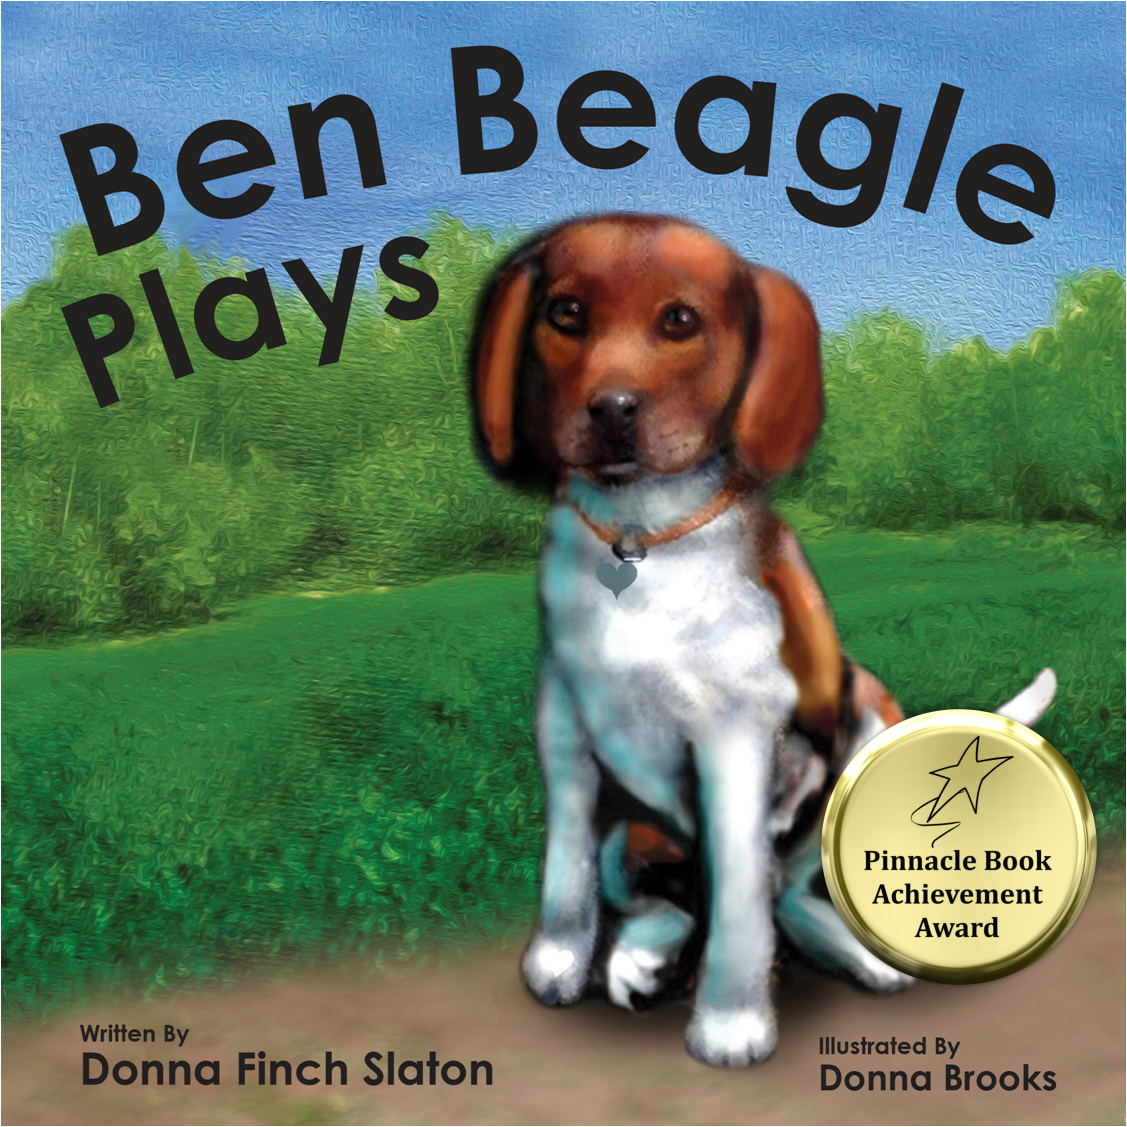 Ben Beagle Plays